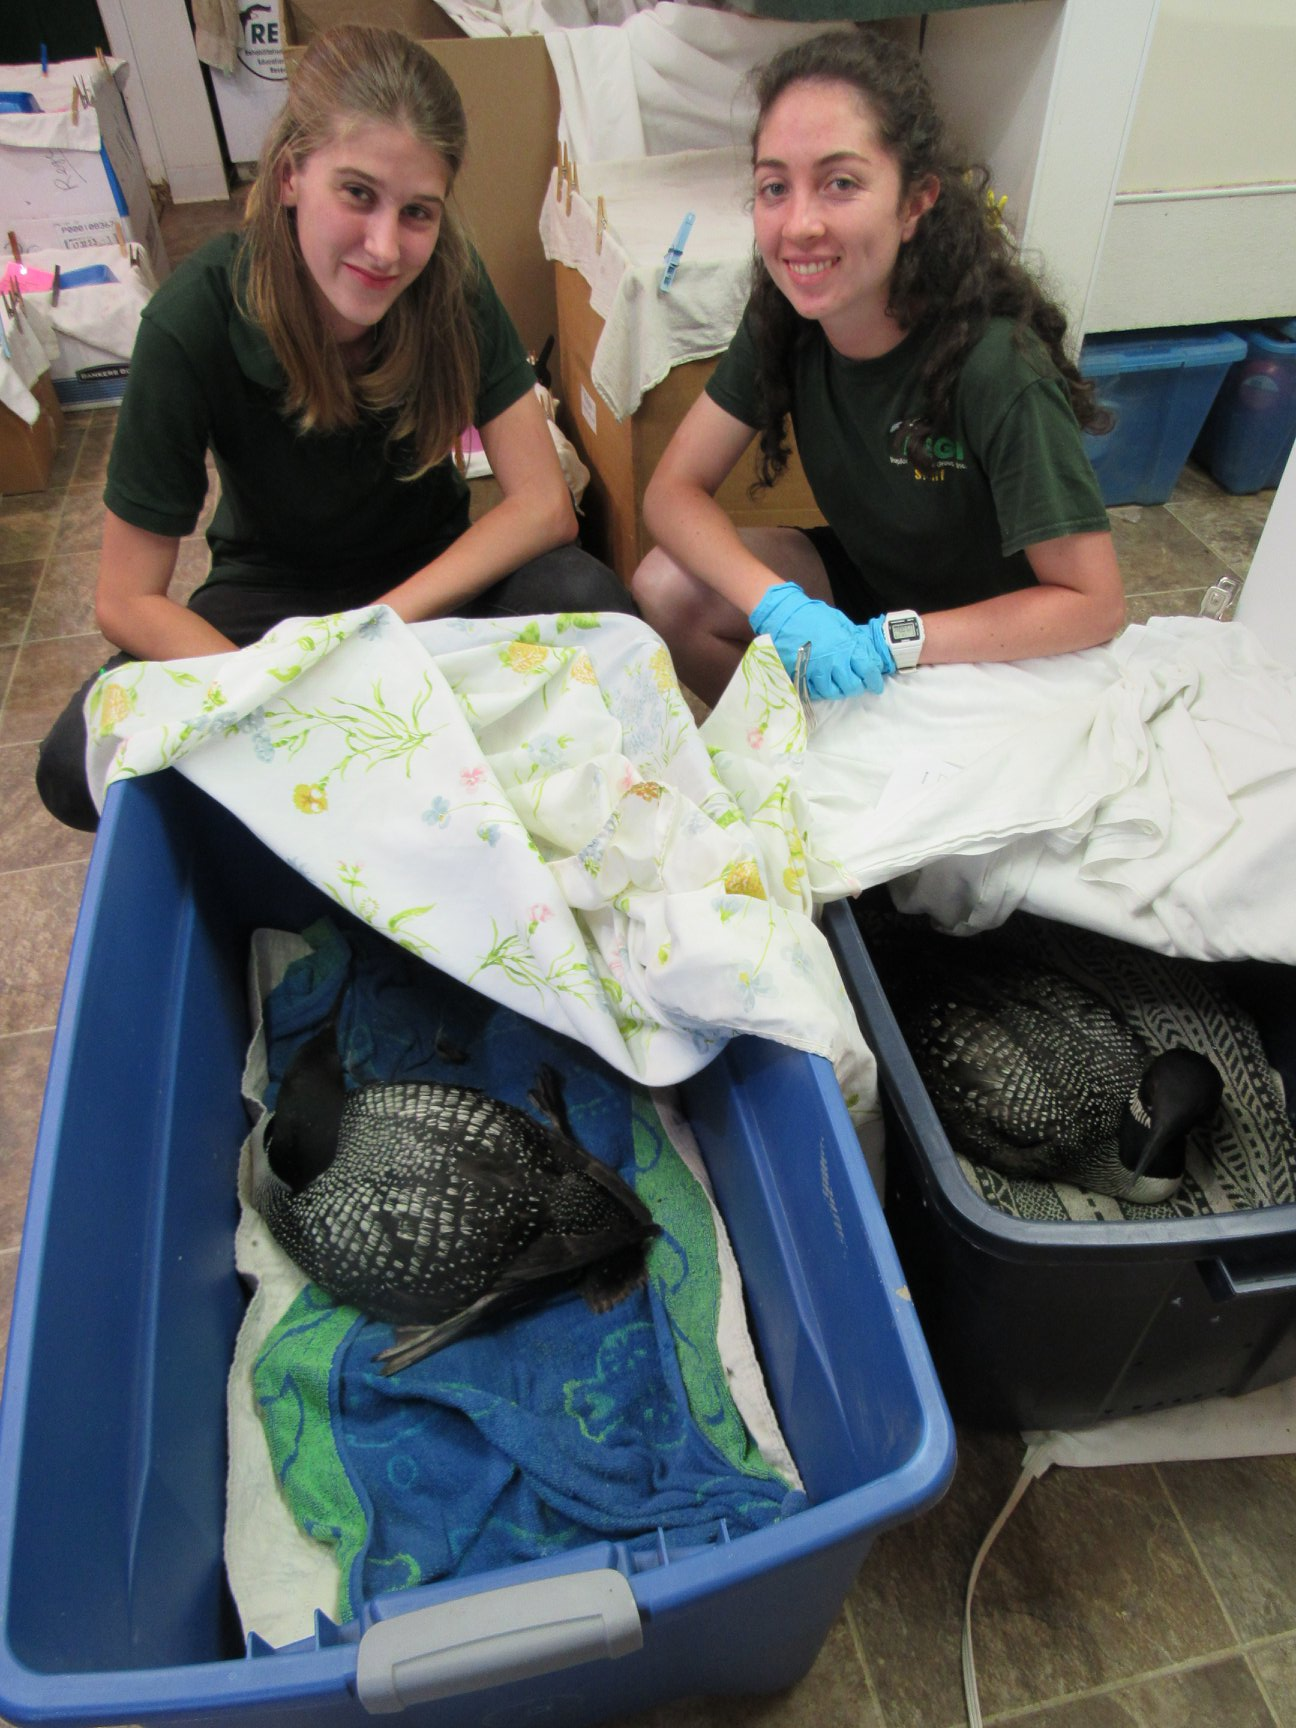 Our loon patients continue to gain weight and prepare for release. Both are doing well.